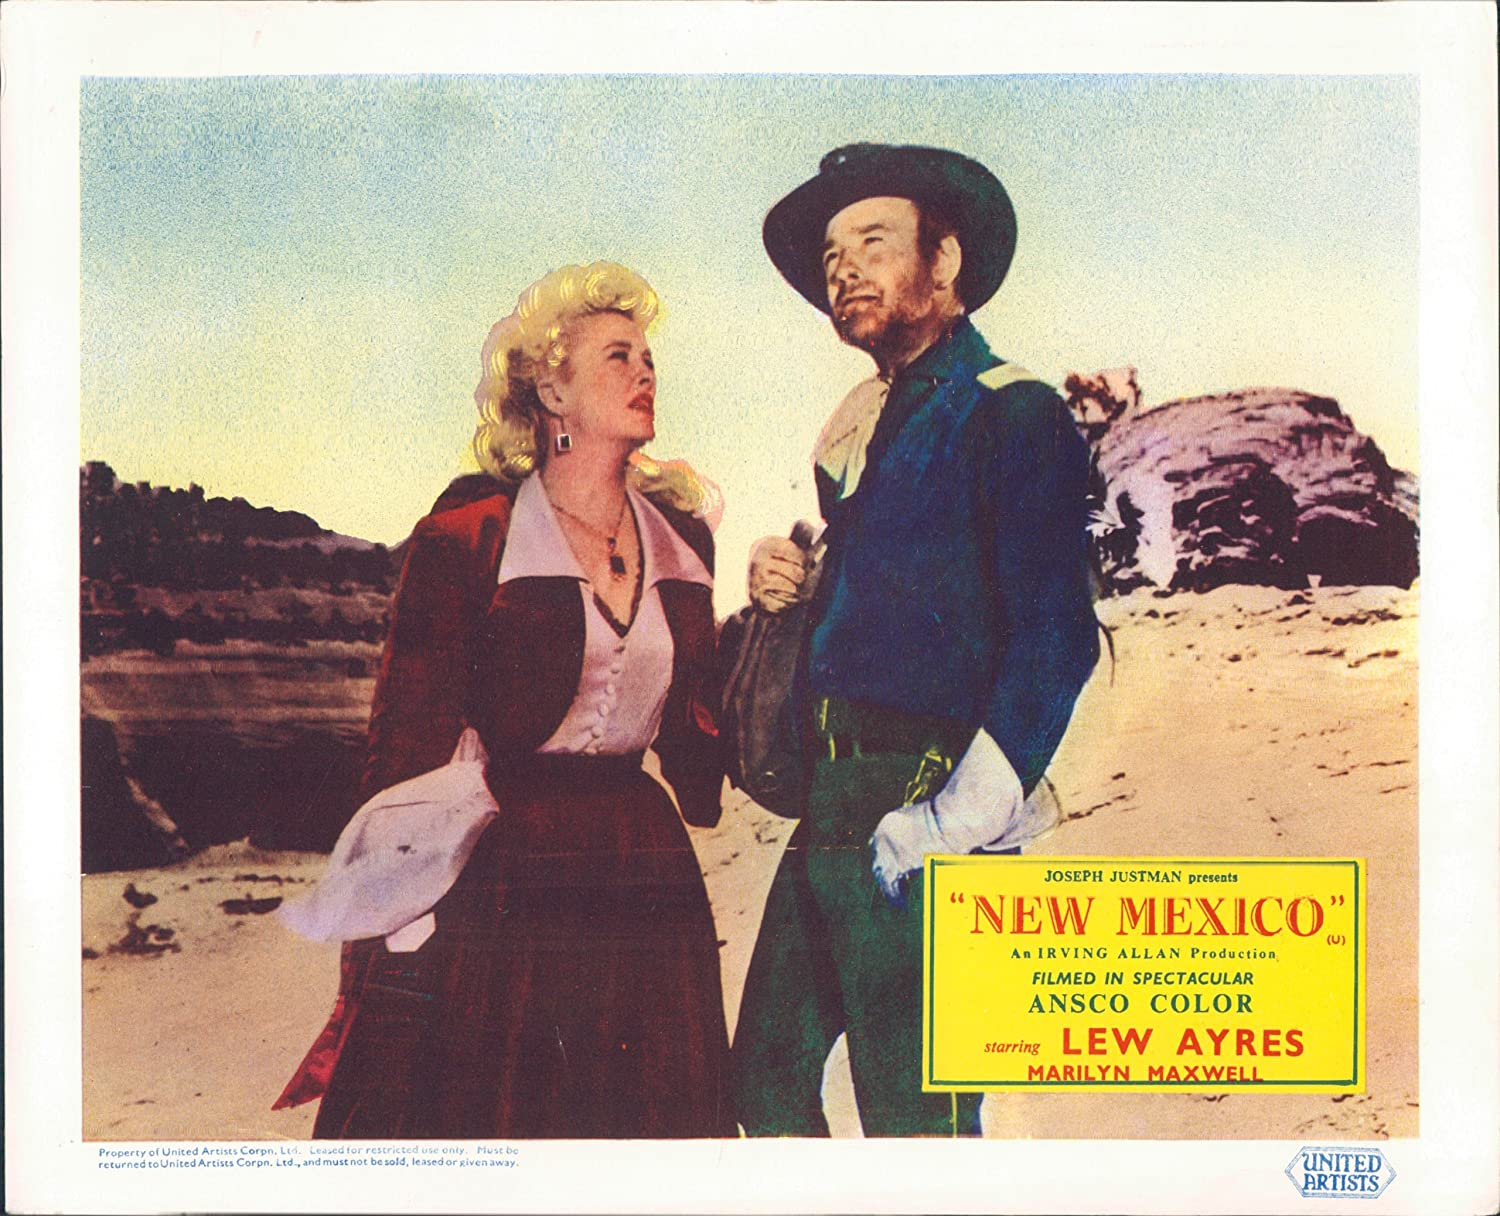 New Mexico Vintage Film Poster Starring Lew Ayres and Marilyn Maxwell